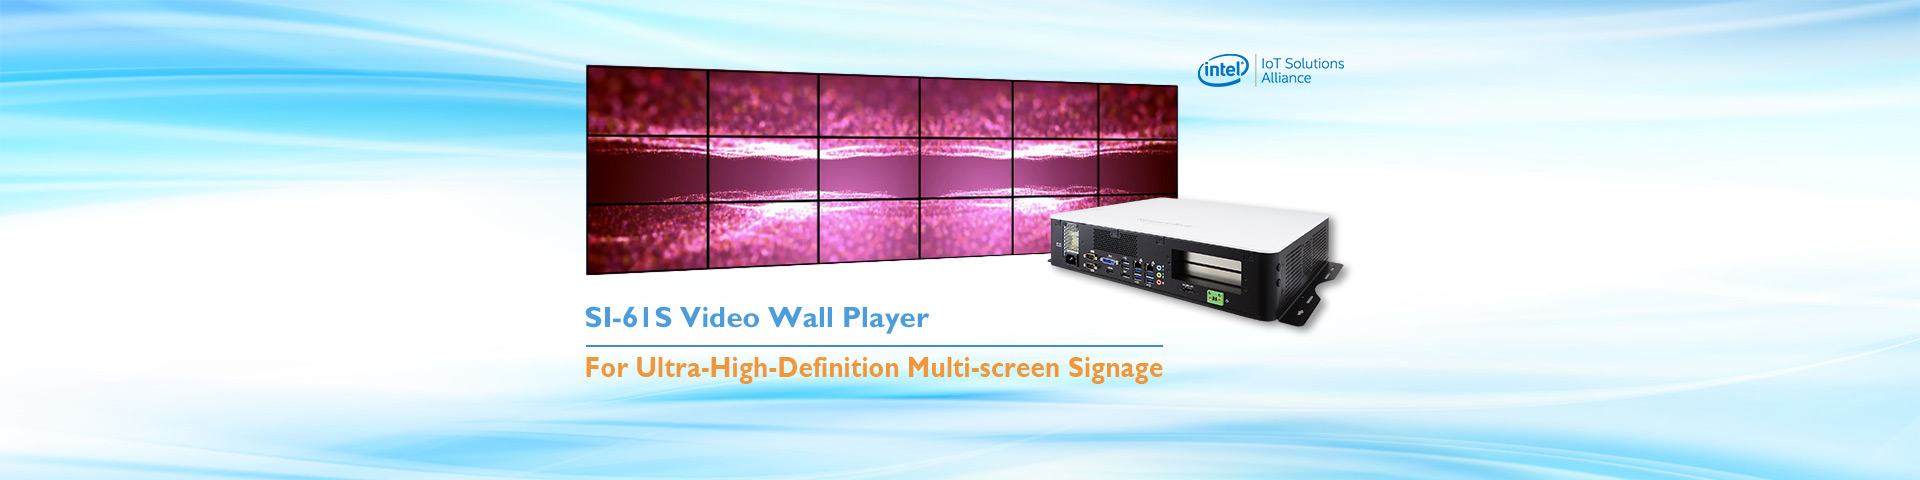 SI-61S Video Wall Player